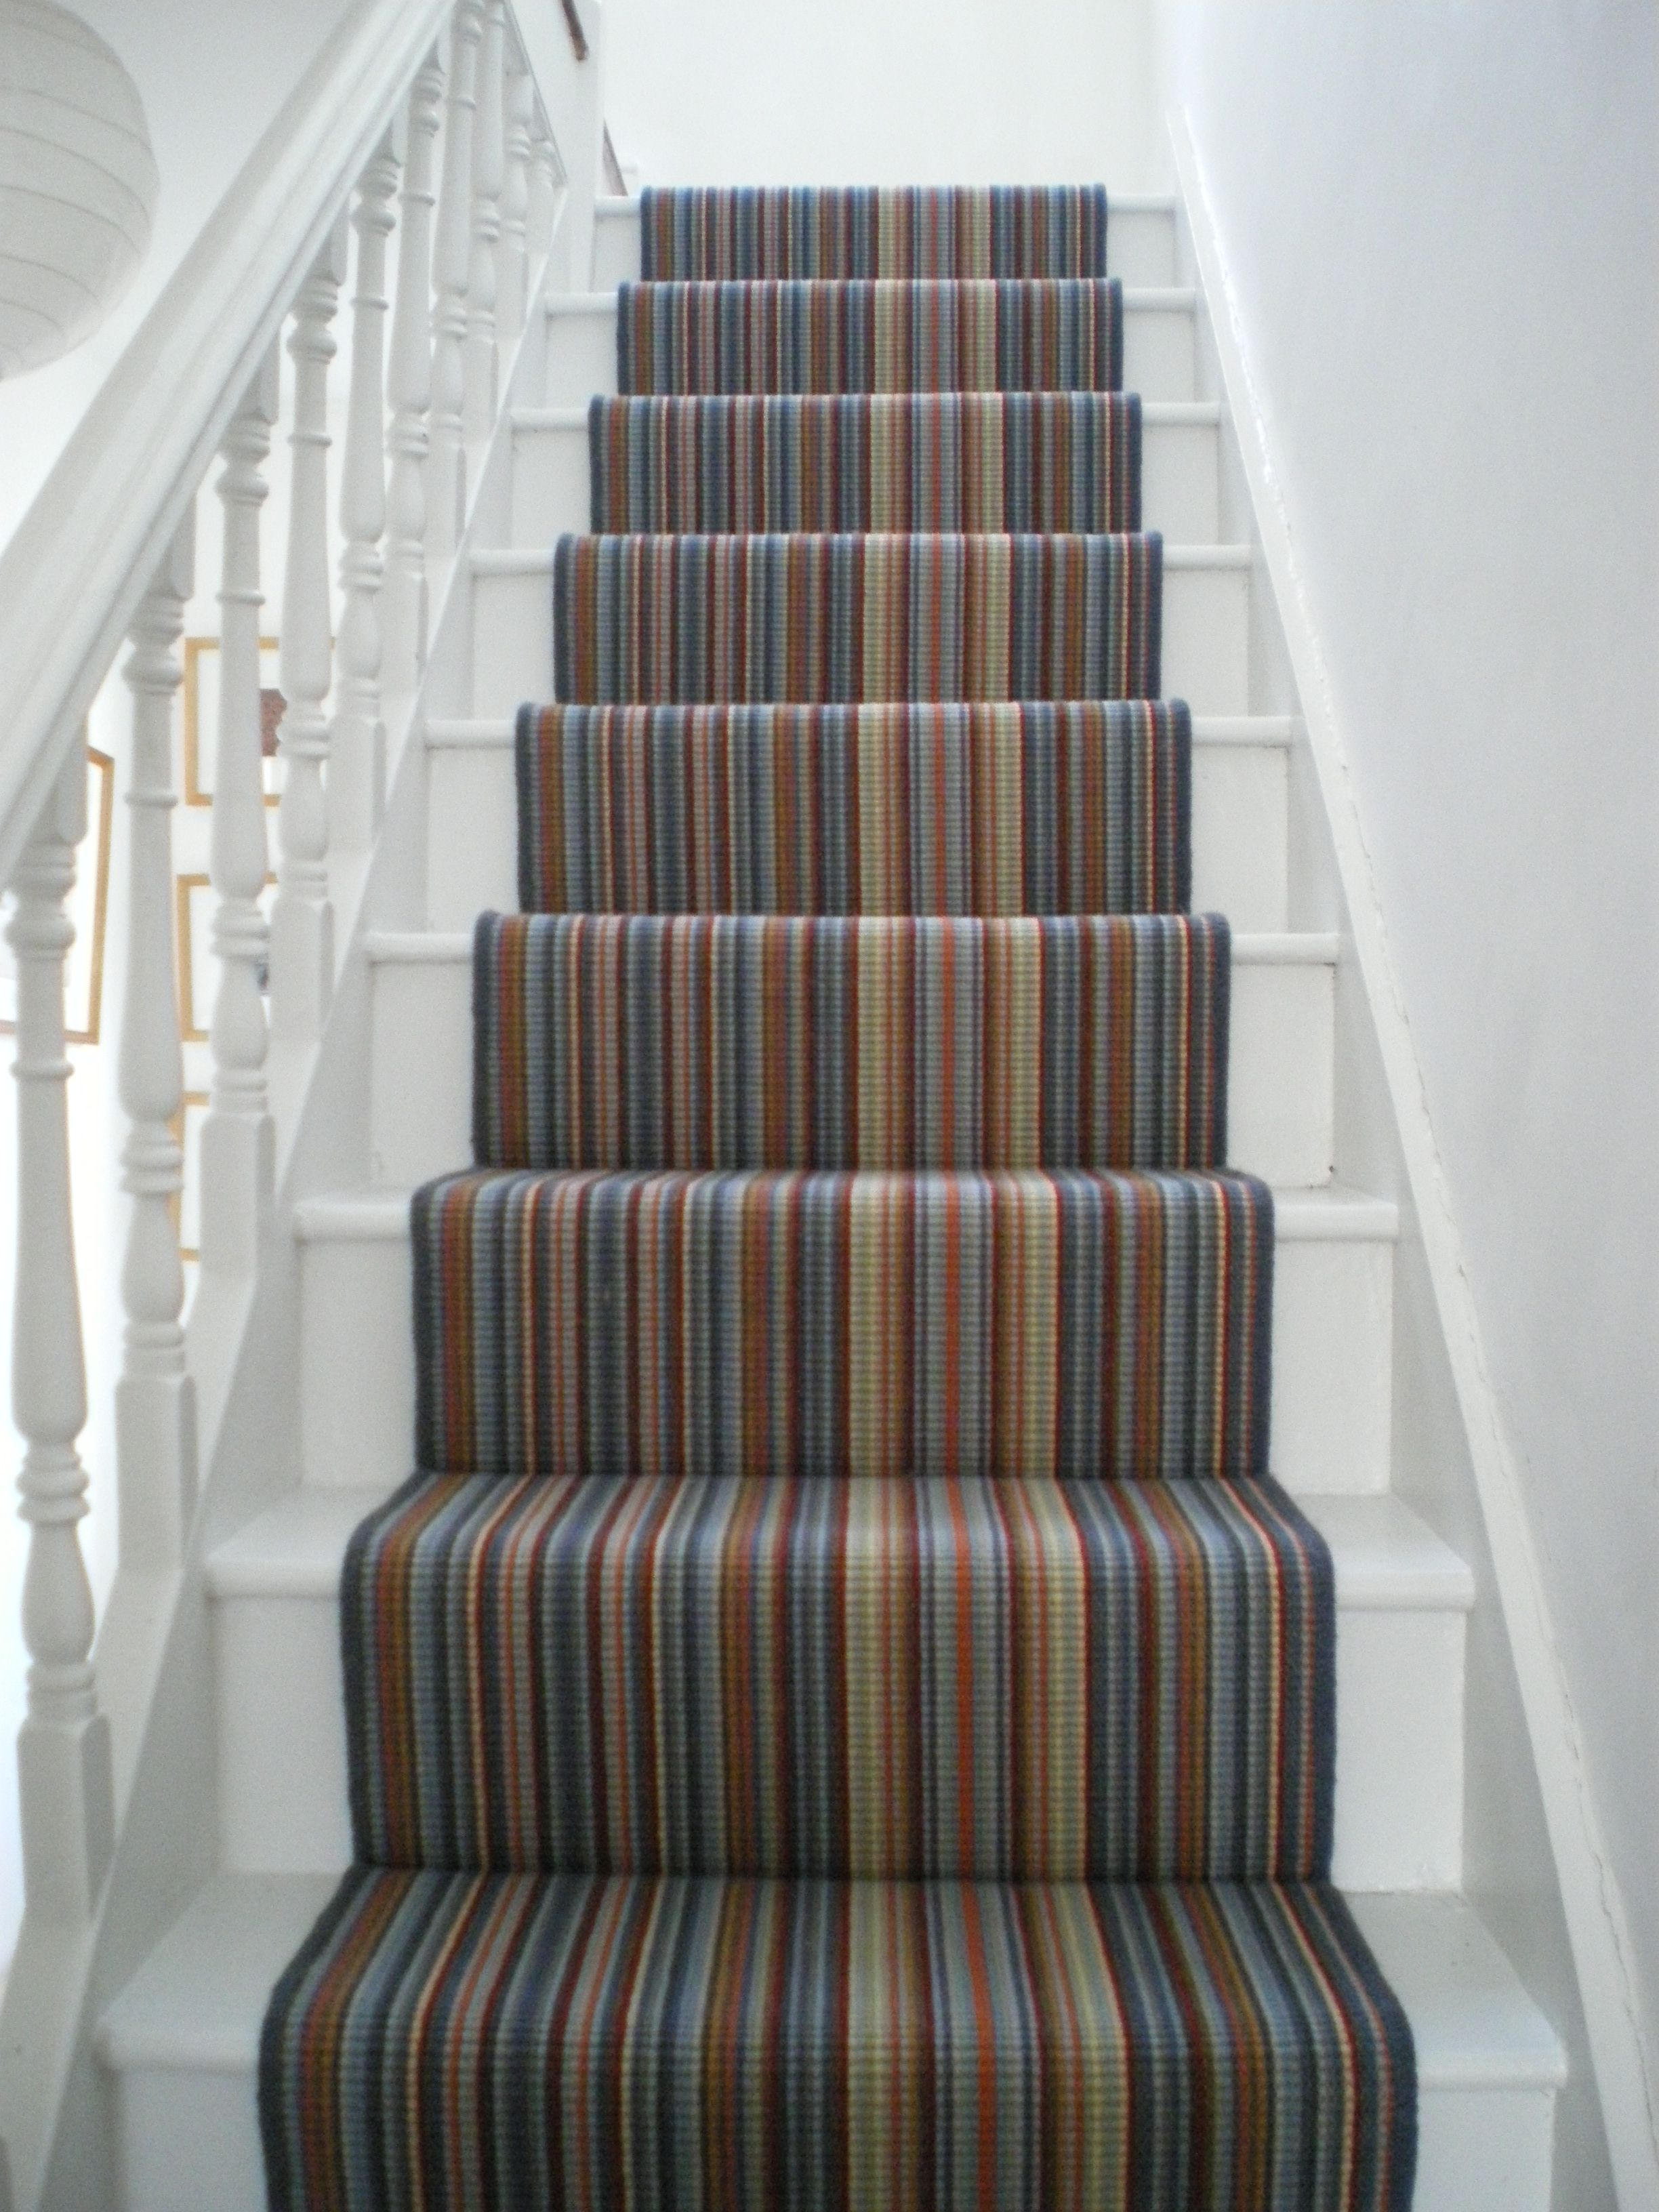 Best Image Detail For Bespoke Stair Runners Textures 400 x 300